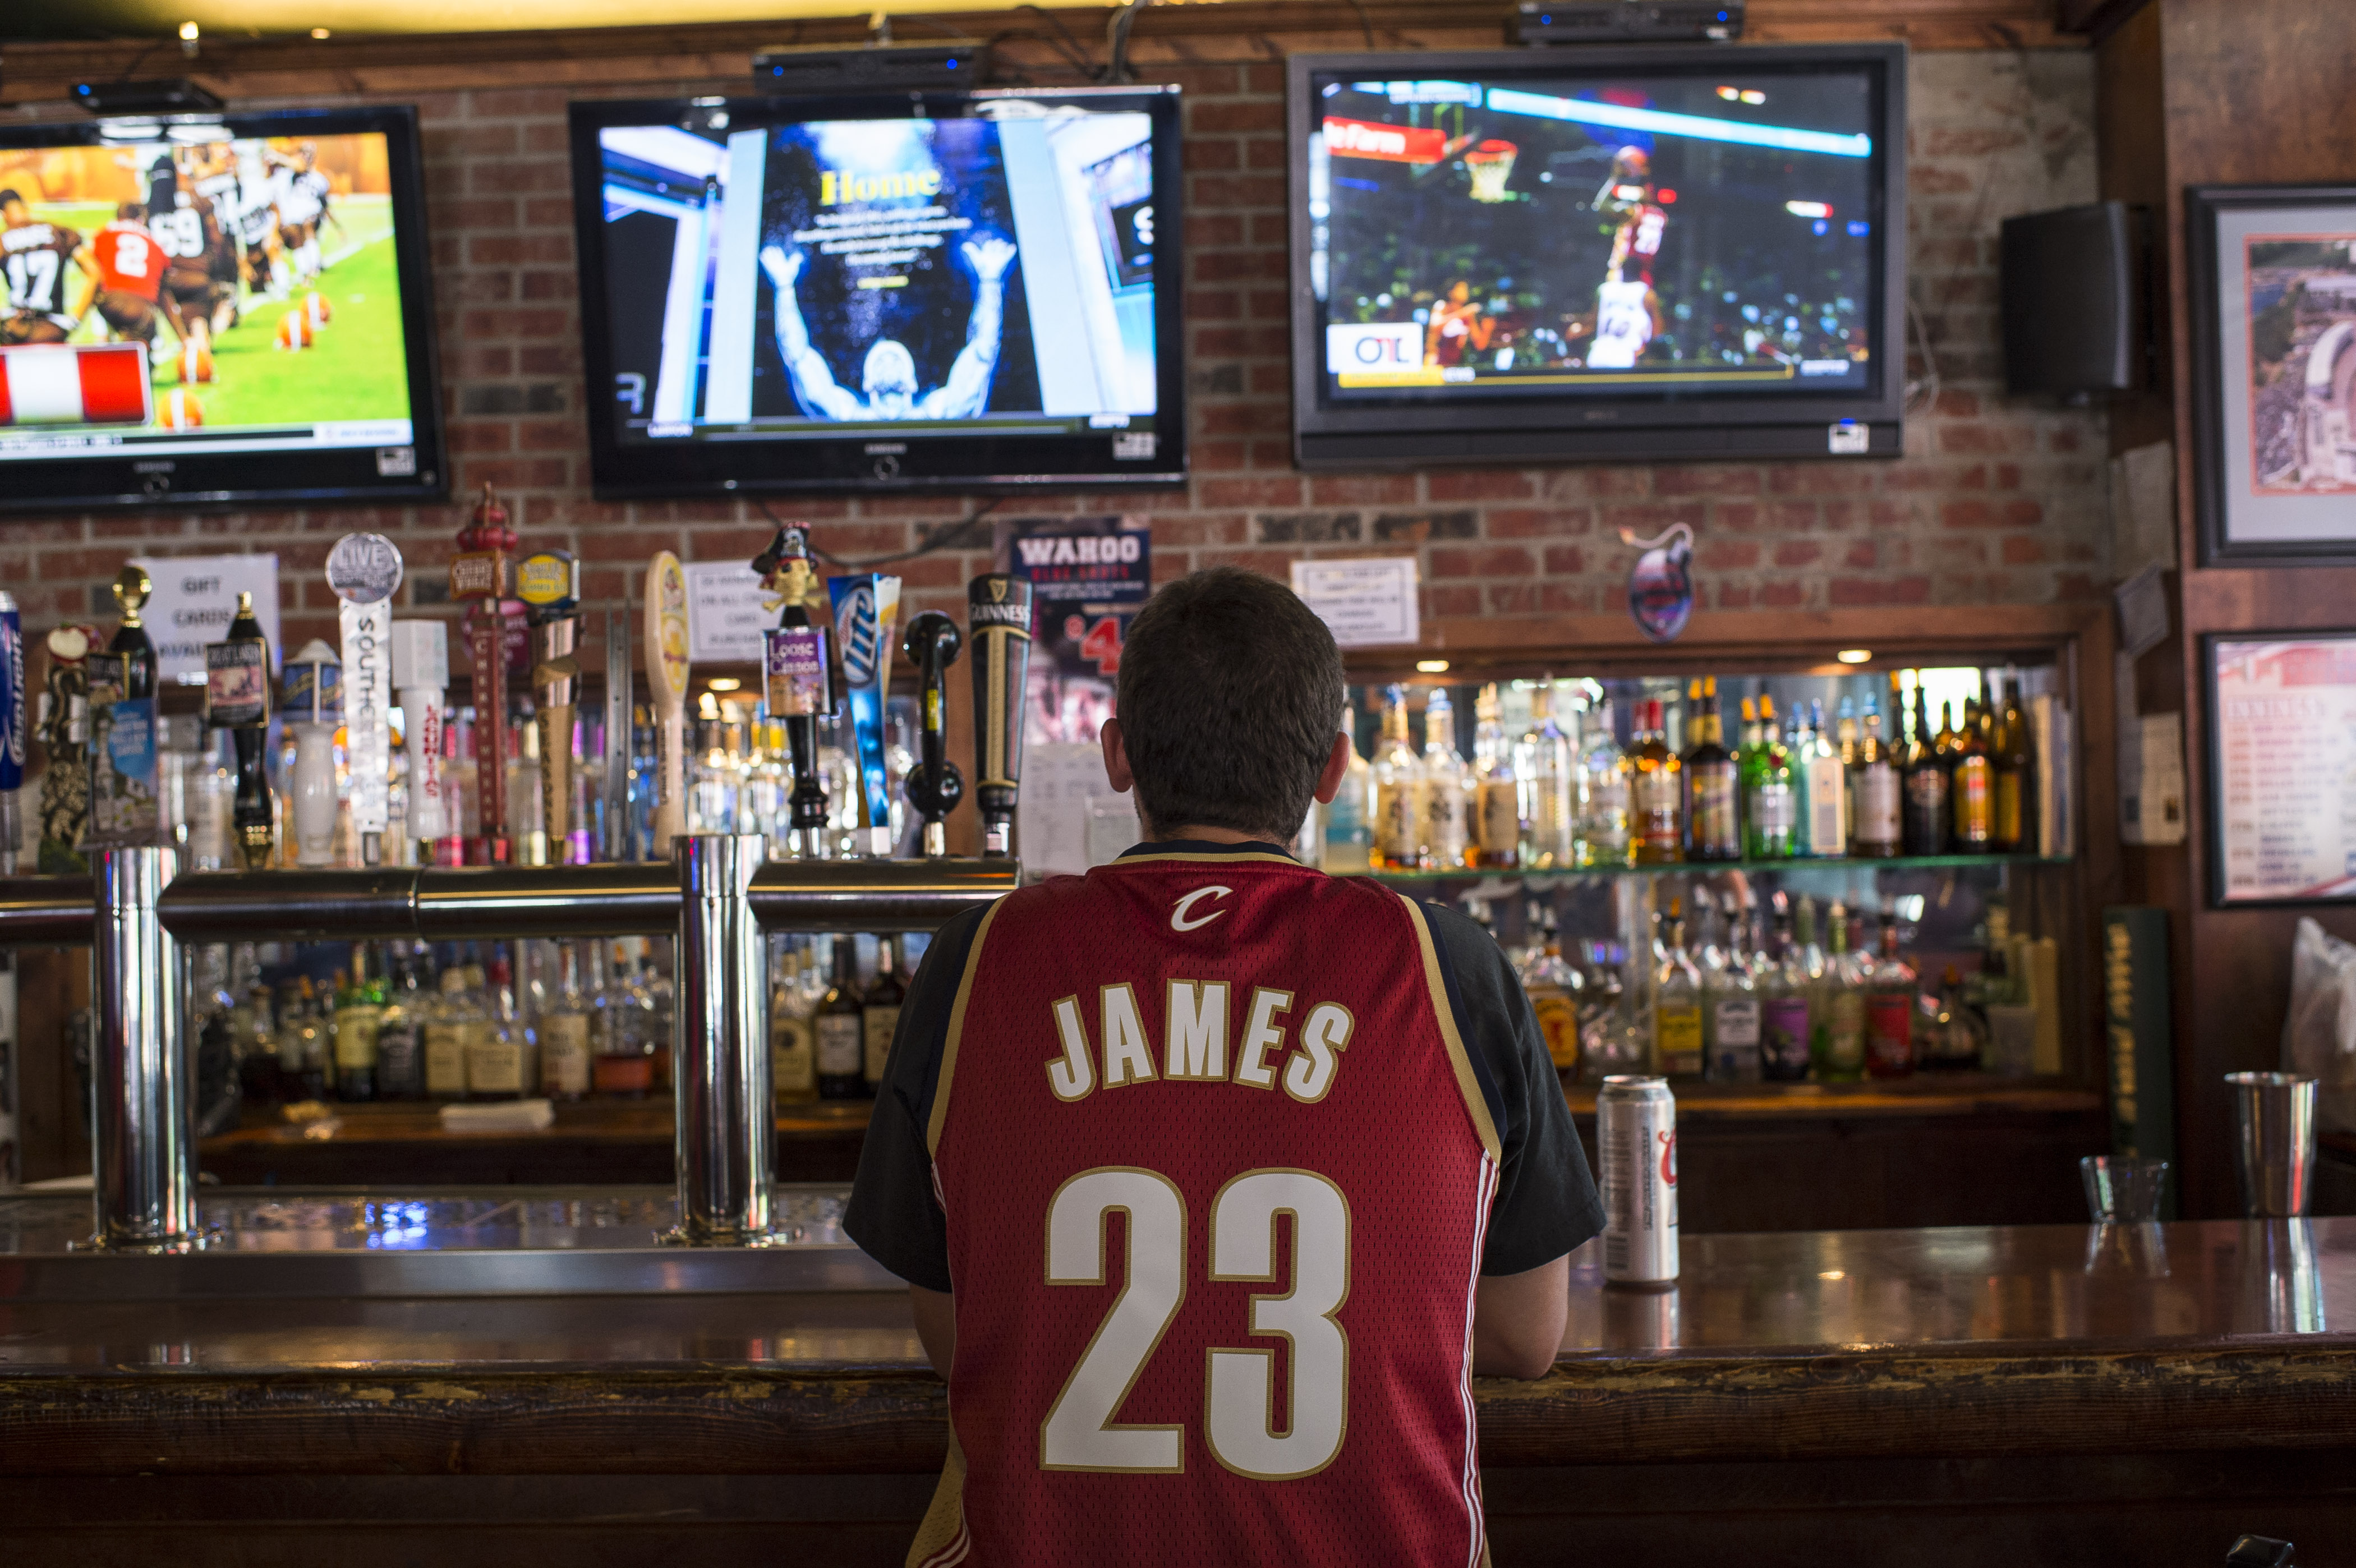 A Cleveland Cavaliers fan watches news coverage of LeBron James' return at Panini's Bar and Grille in downtown Cleveland on July 11, 2014